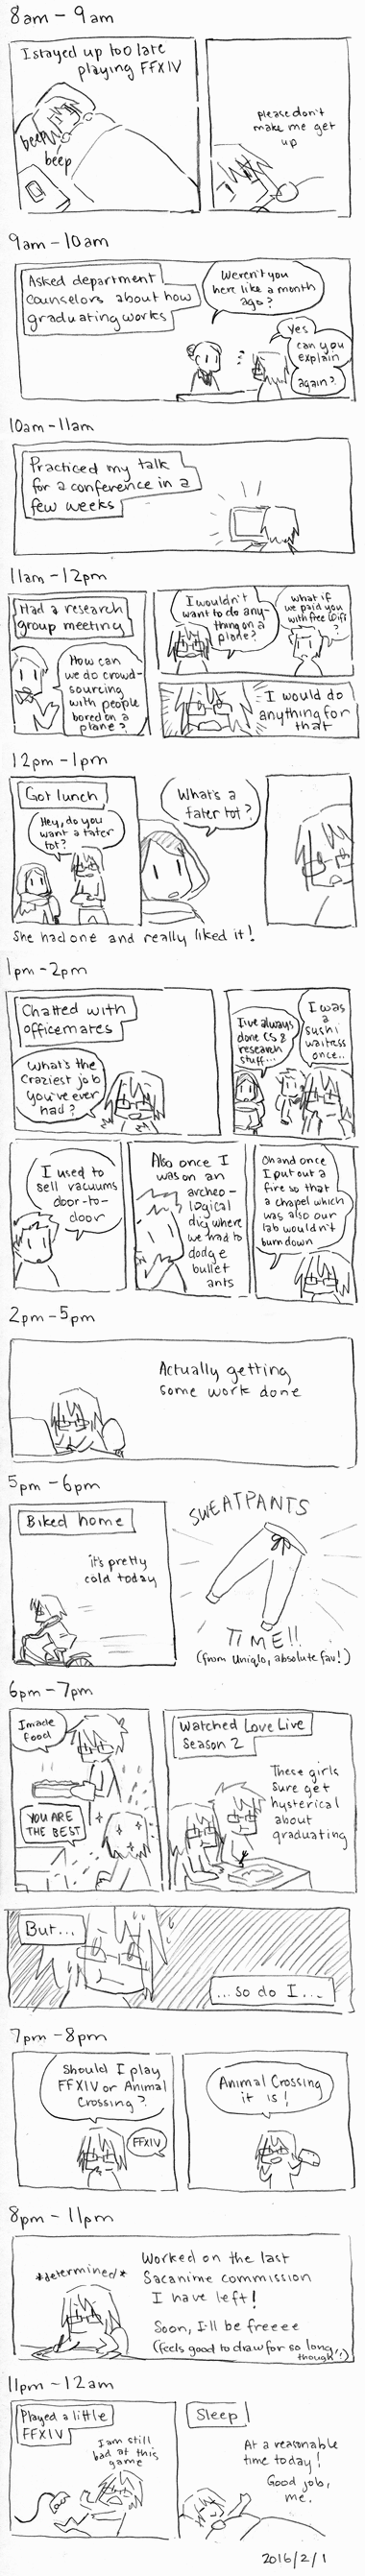 Hourly Comics Day 2016